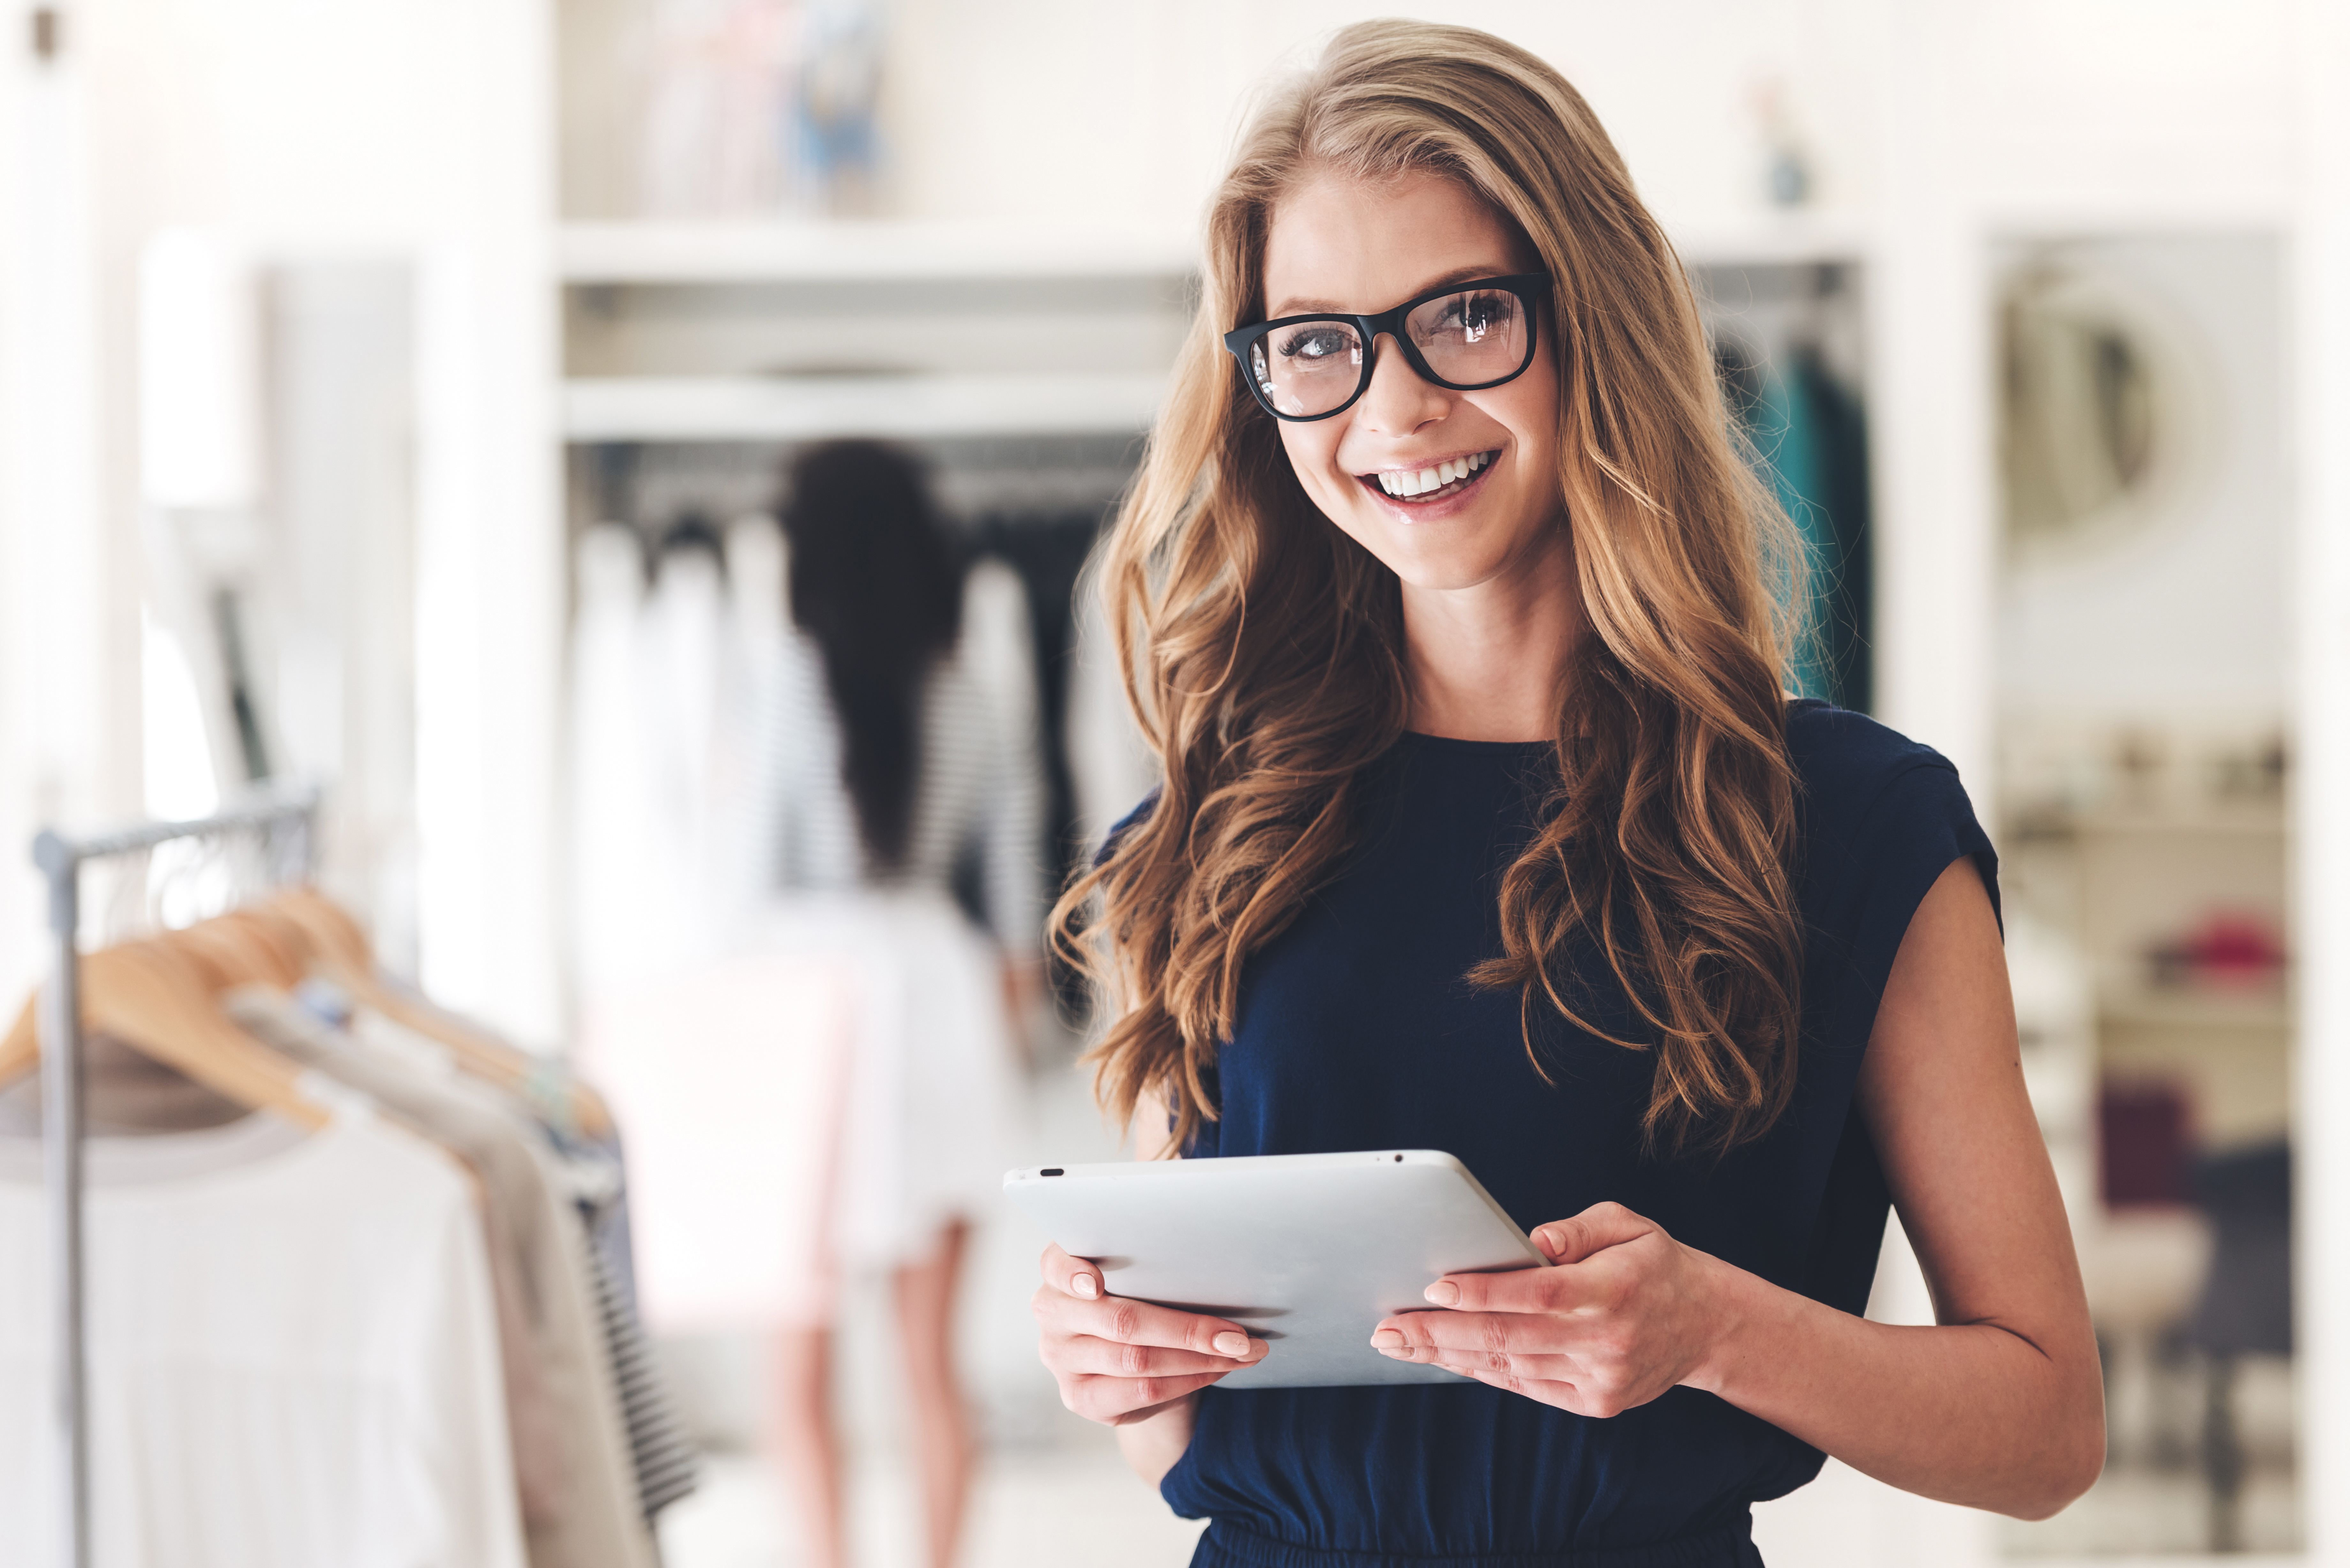 Customer service gets more important for retailers.